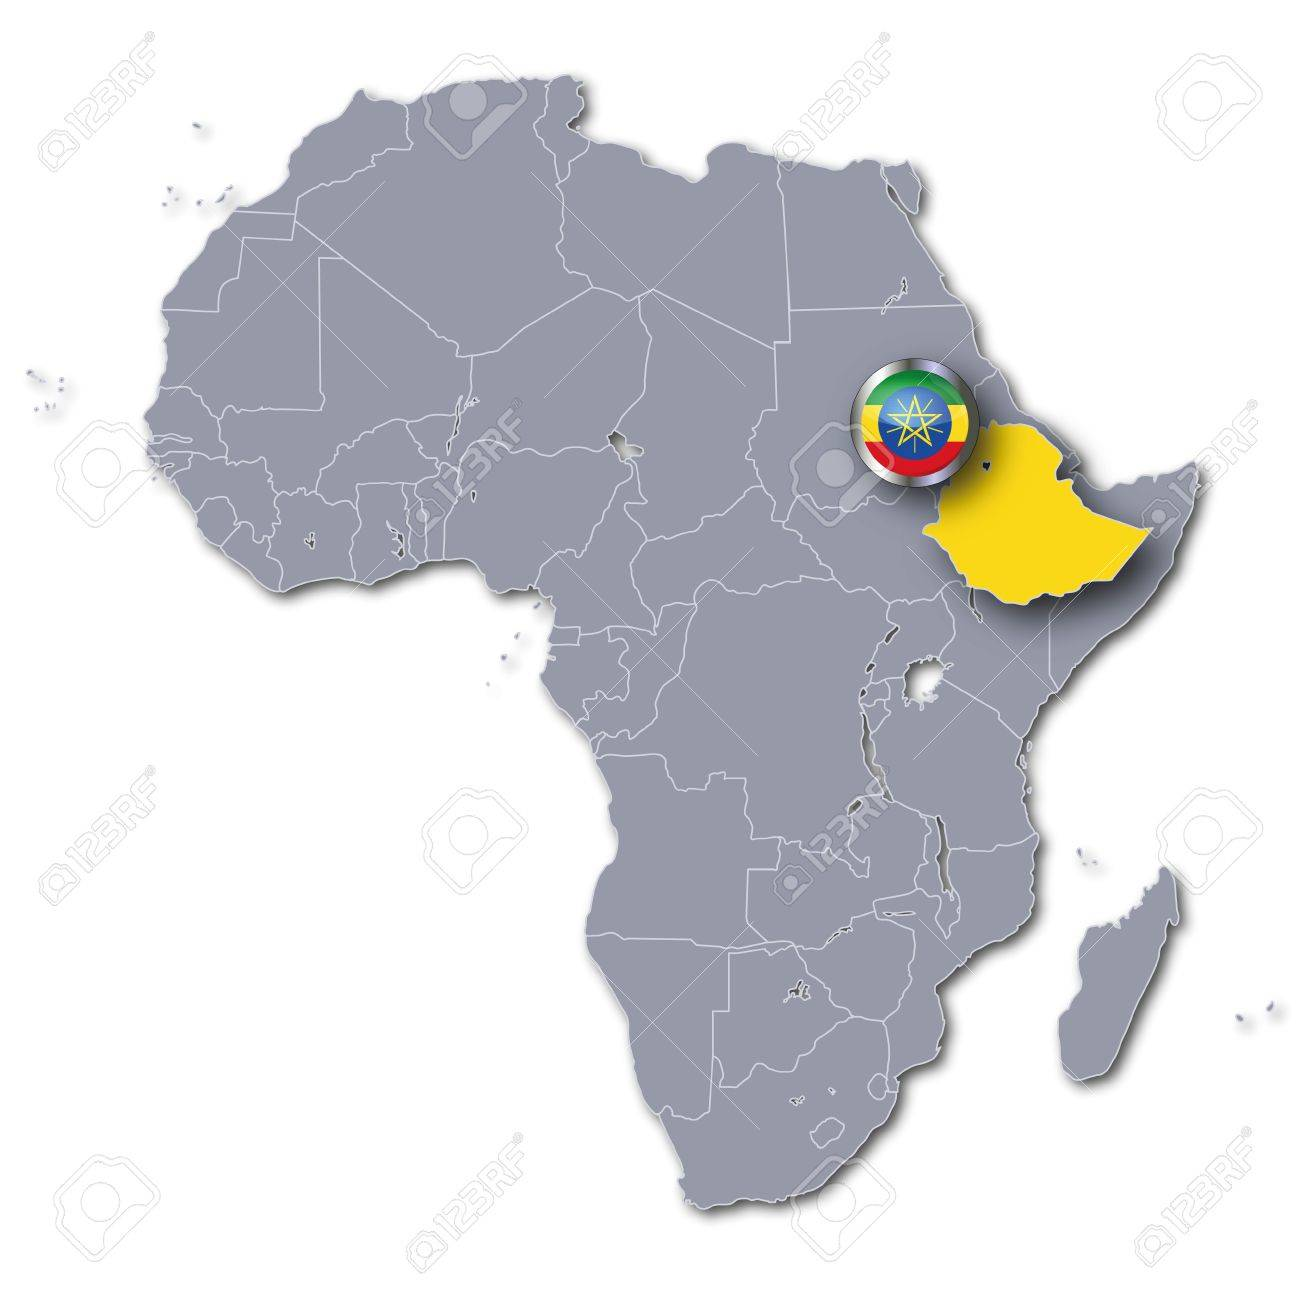 Ethiopia In Africa Map volley ball court measurements